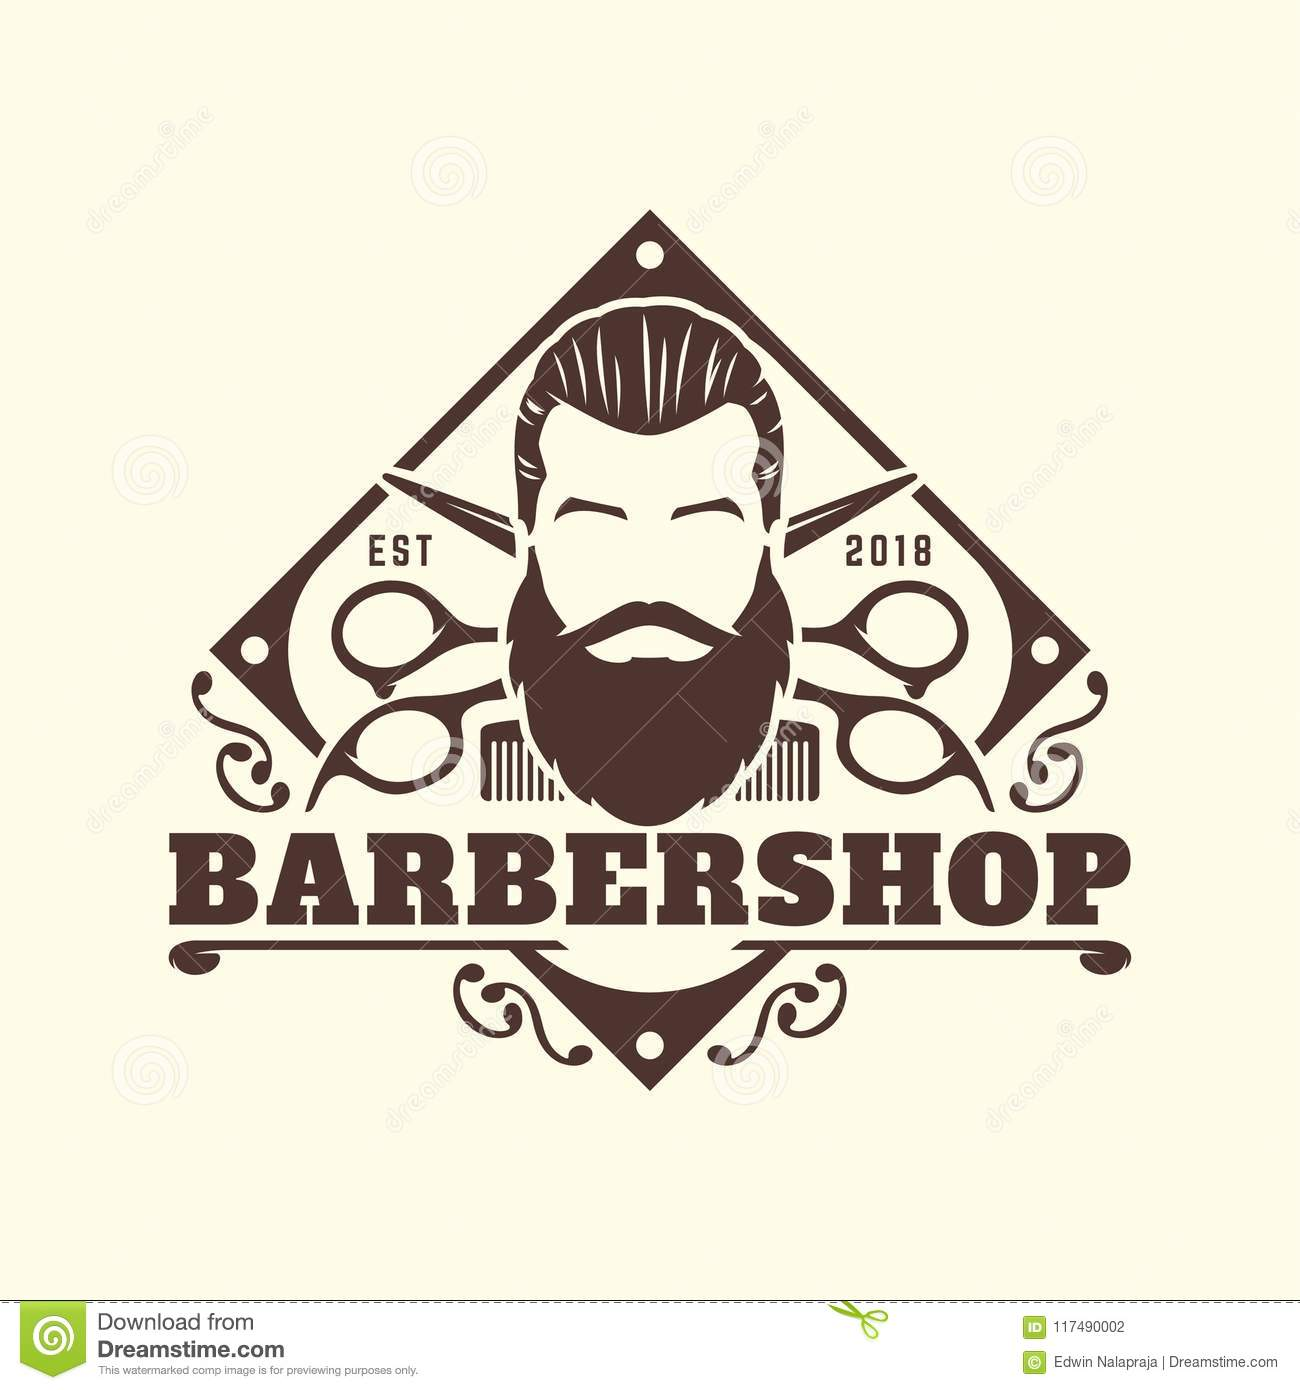 Barbershop Logo Template Vintage Or Retro Style With